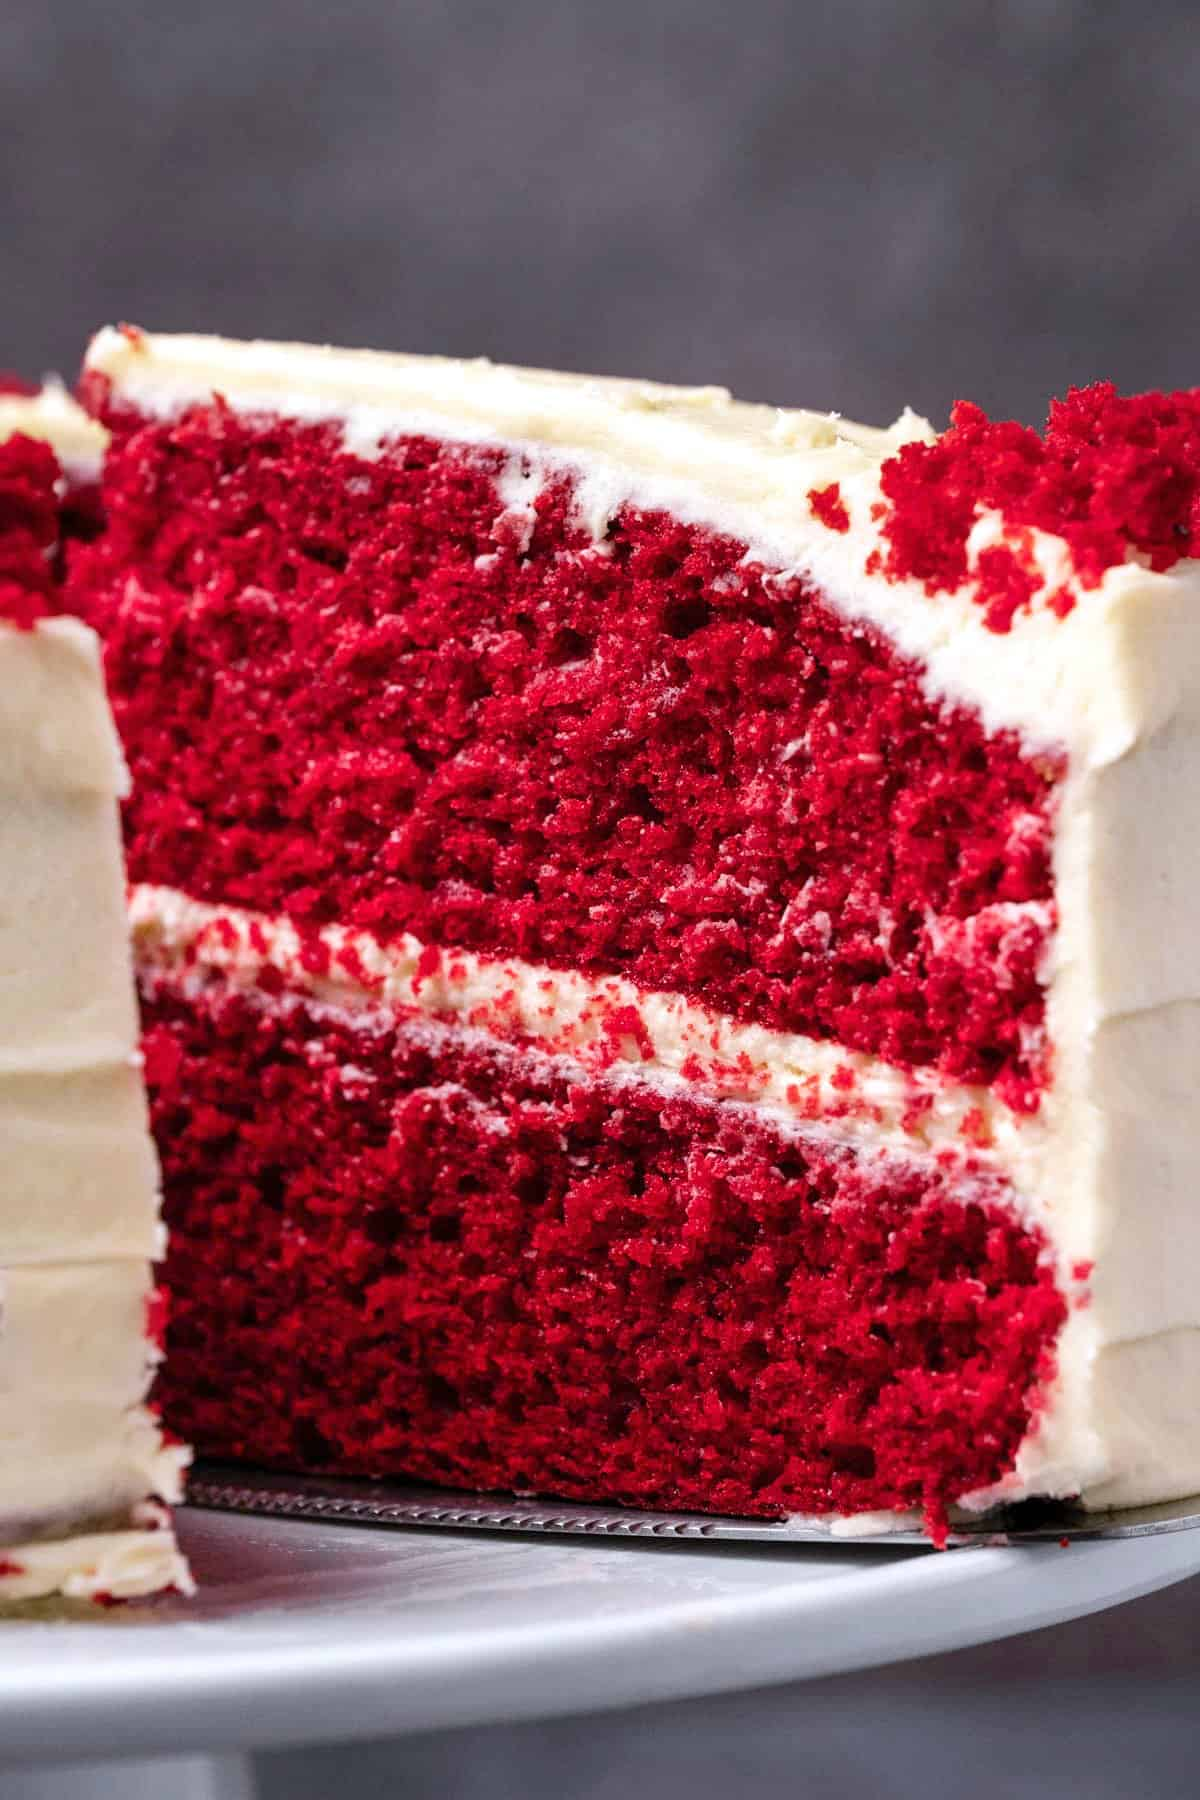 Red velvet cake with one slice cut on a white cake stand.